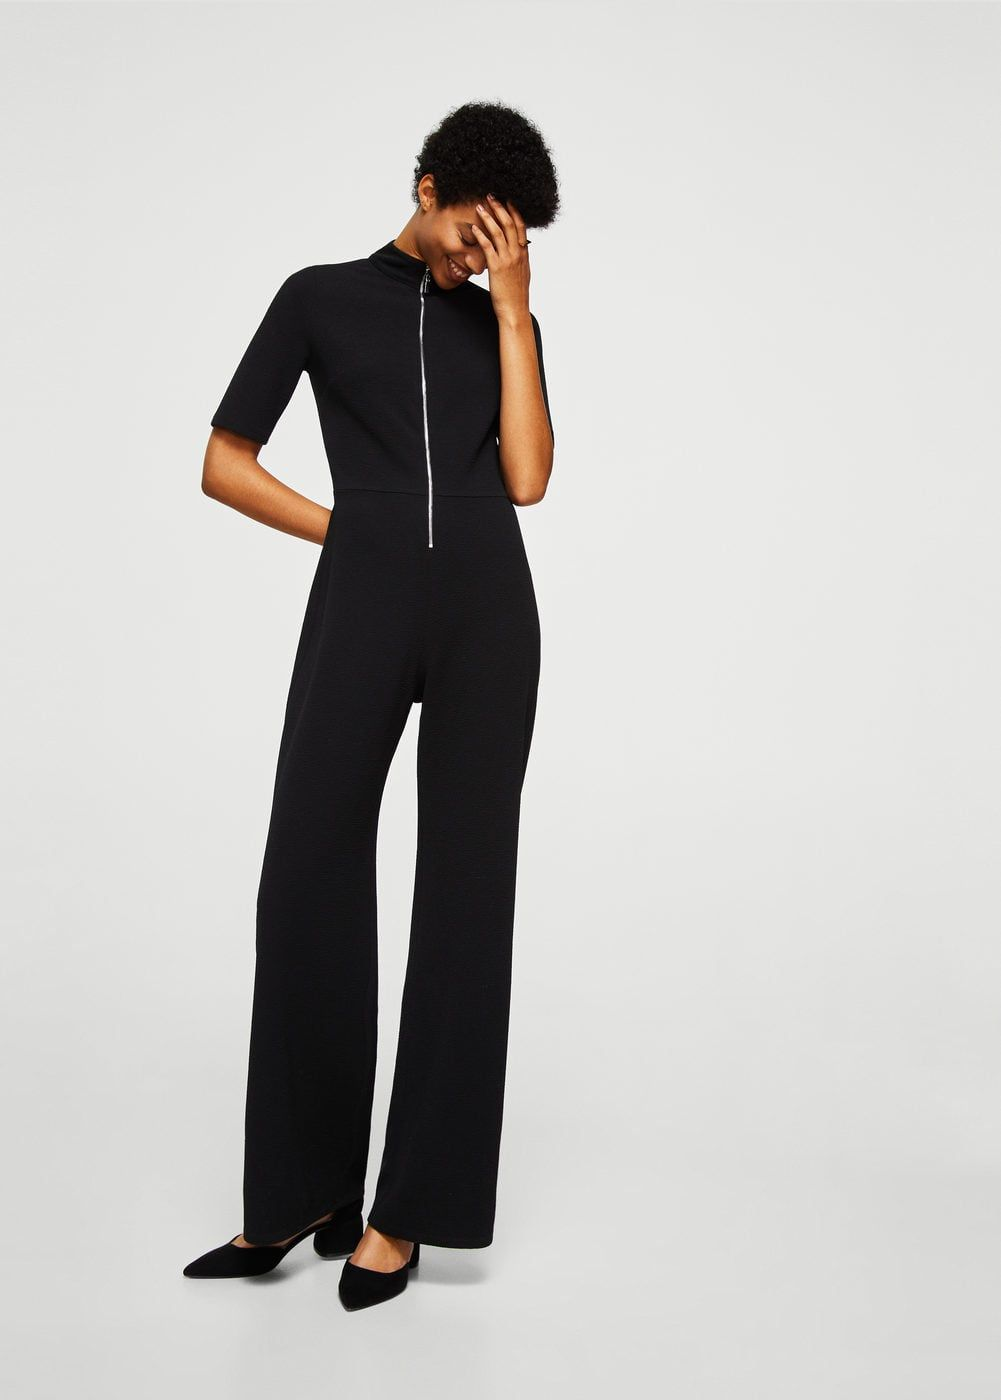 05a2dfaea0 Zip long jumpsuit - Women